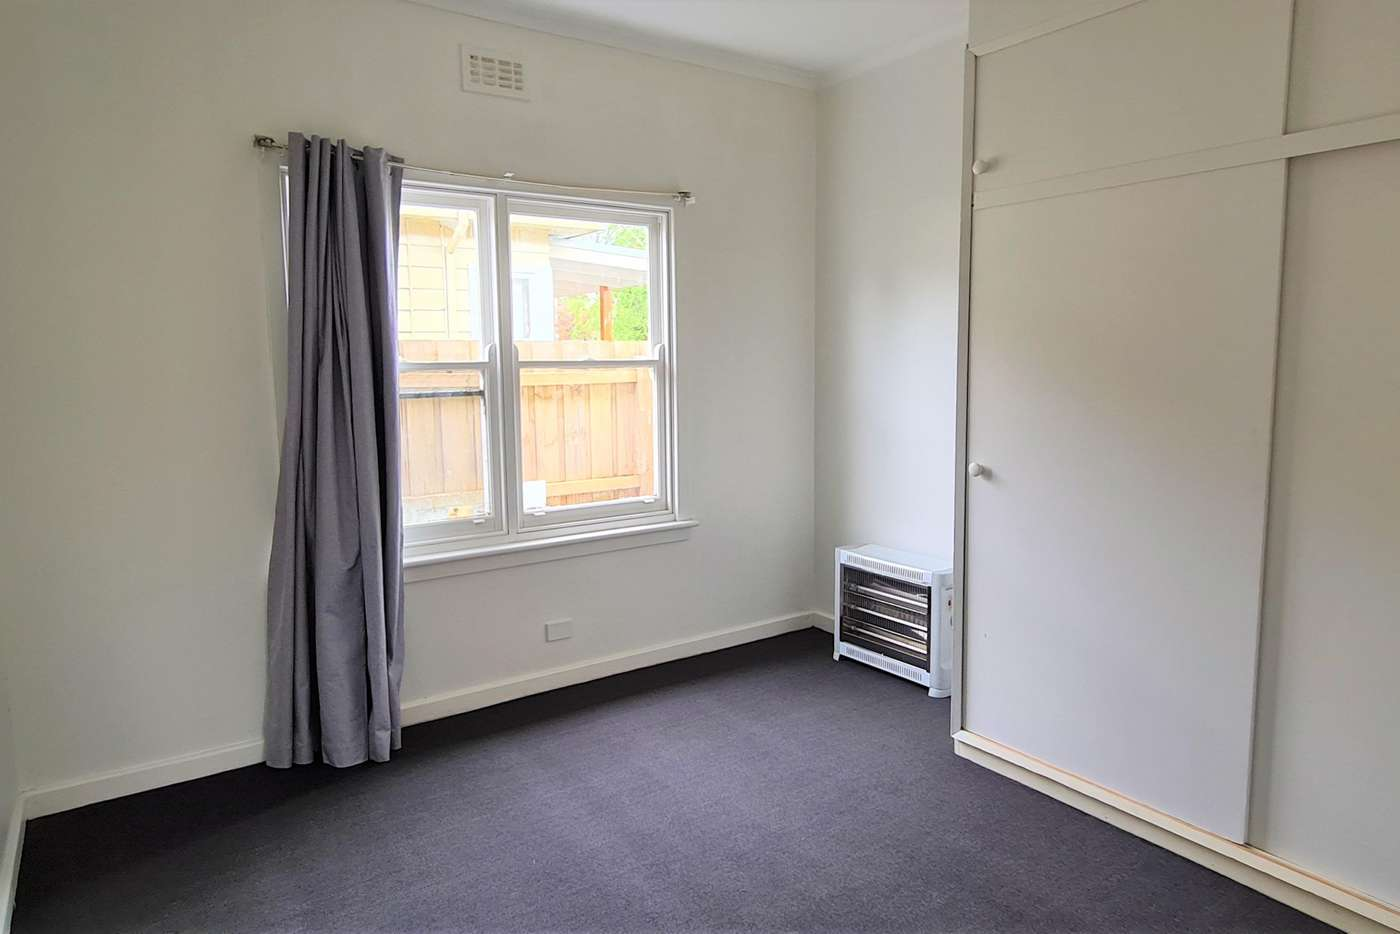 Sixth view of Homely house listing, 28 Mimosa Avenue, Oakleigh South VIC 3167